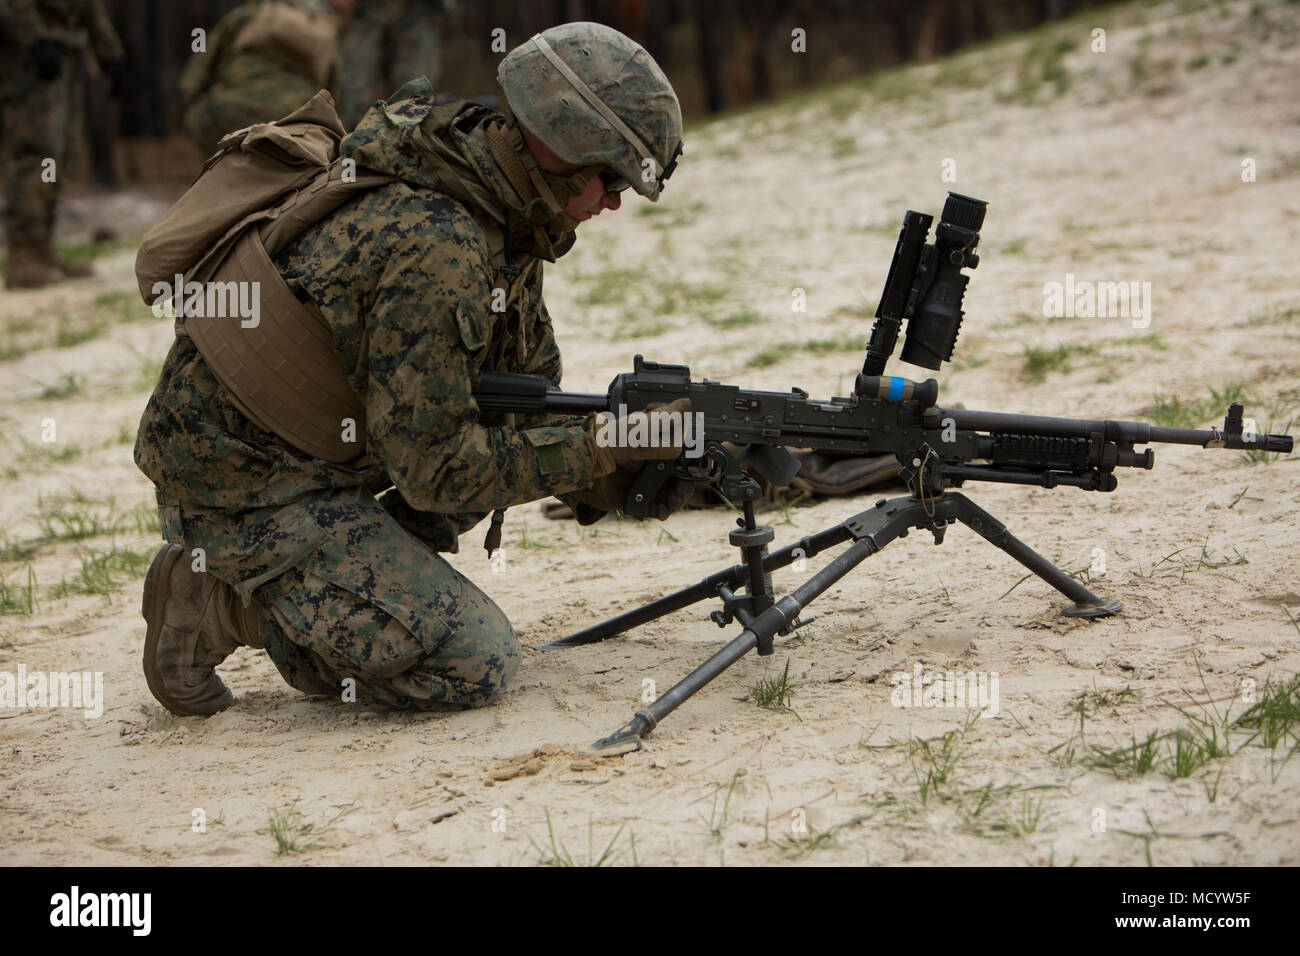 A U.S. Marine with Company L, 3rd Battalion, 2nd Marine Regiment, 2nd Marine Division, inspects a M240B machine gun before conducting a live-fire platoon attack on the new G29 range on Camp Lejeune, N.C., March 6, 2018. 2nd Marine Division provided funding and material for the creation of G29, then used 2nd Combat Engineer Battalion equipment and operators to finalize the production of the range. (U.S. Marine Corps photo by Pfc. Nathaniel Hamilton) - Stock Image